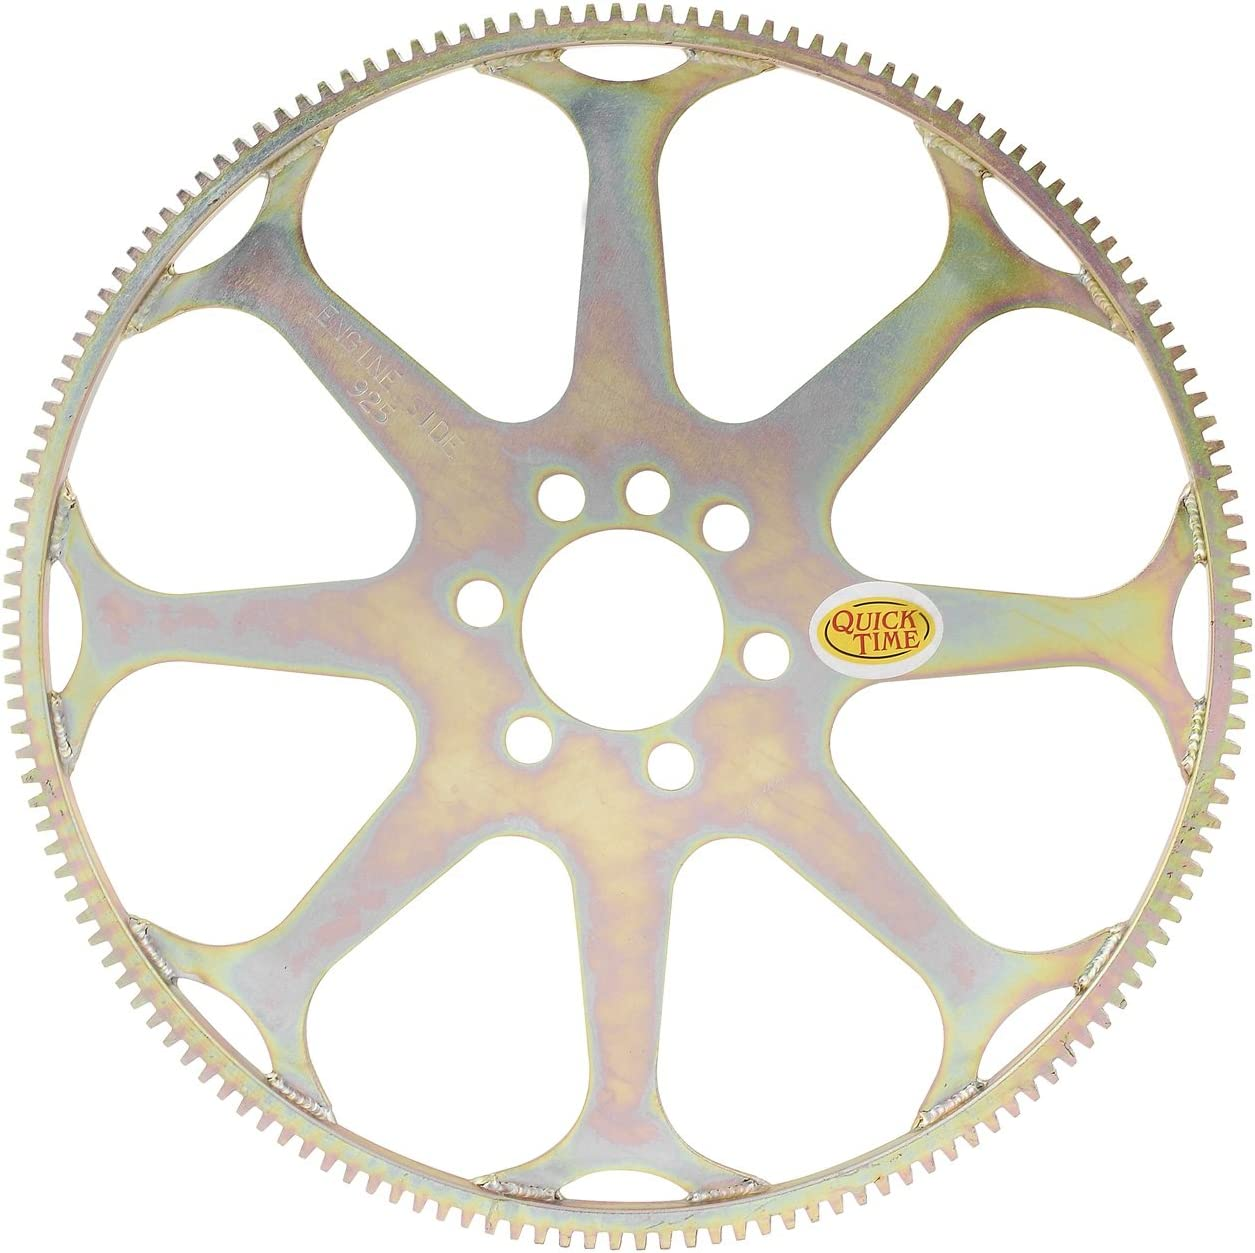 Sales of SALE items from new works QuickTime RM-925 Metric Lightweight for Chevrolet Sm Flexplate store